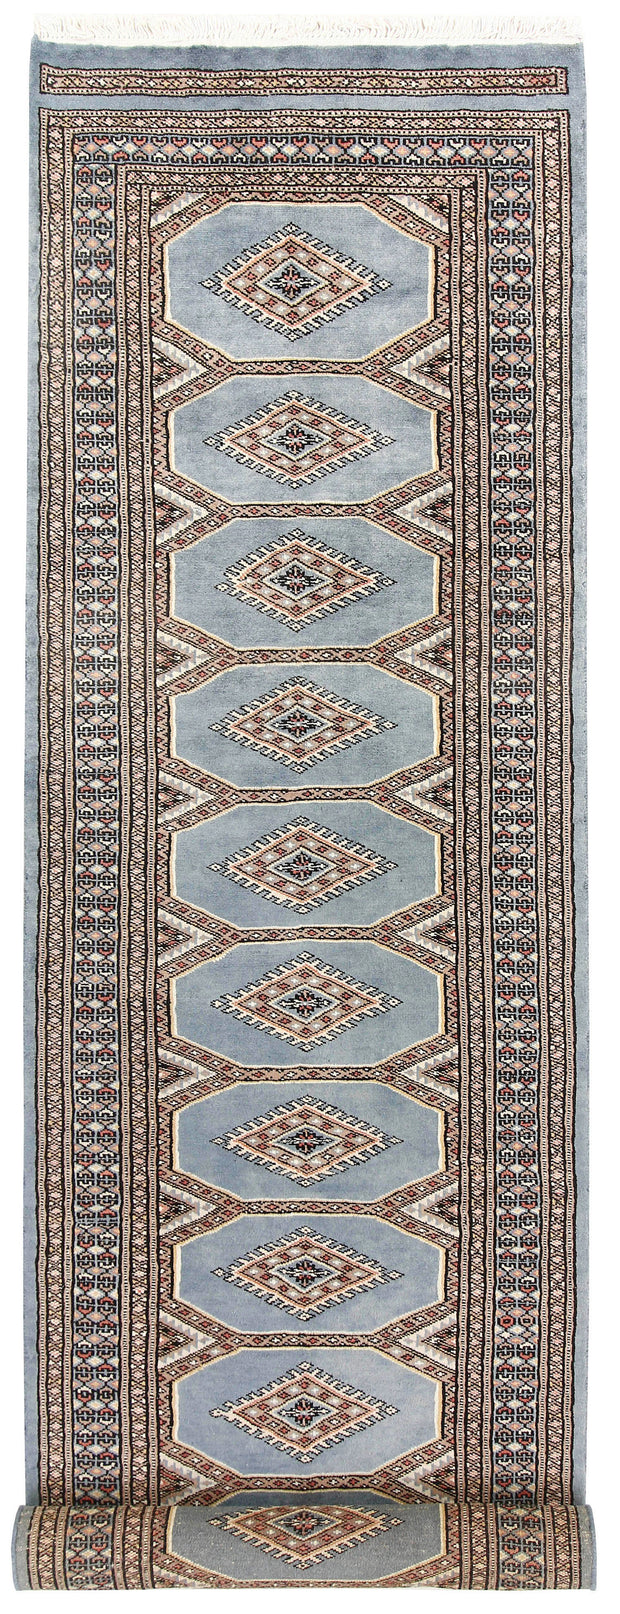 Light Slate Grey Jaldar 2' 4 x 8' 10 - No. 58964 - ALRUG Rug Store